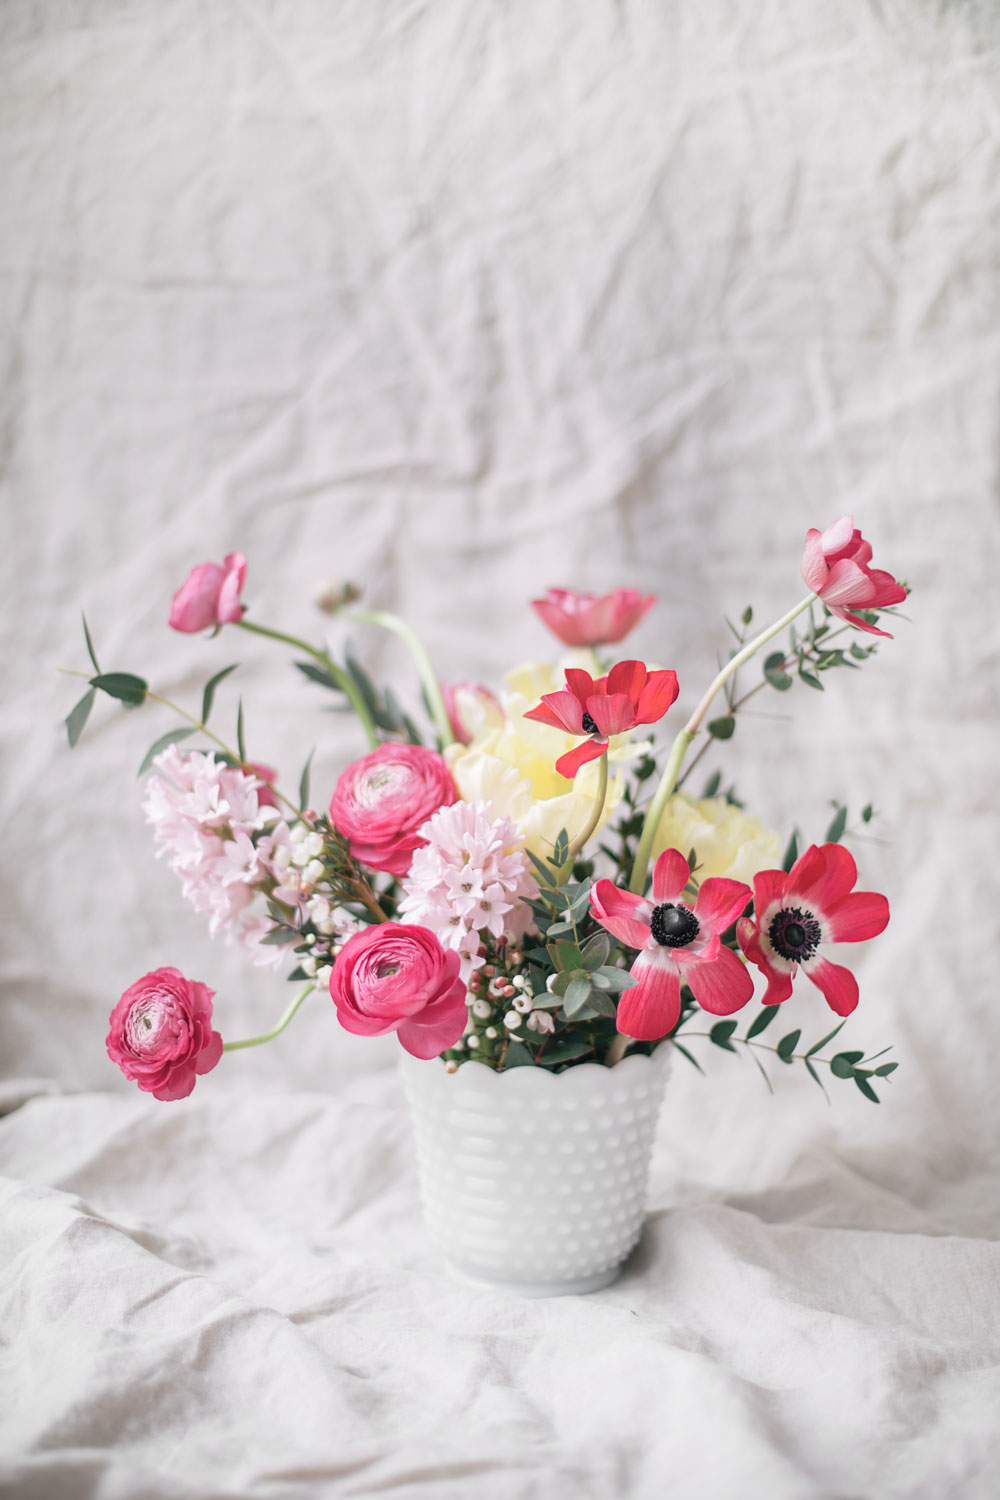 Funky Flower Bouquets Under $20 Image Collection - Wedding and ...